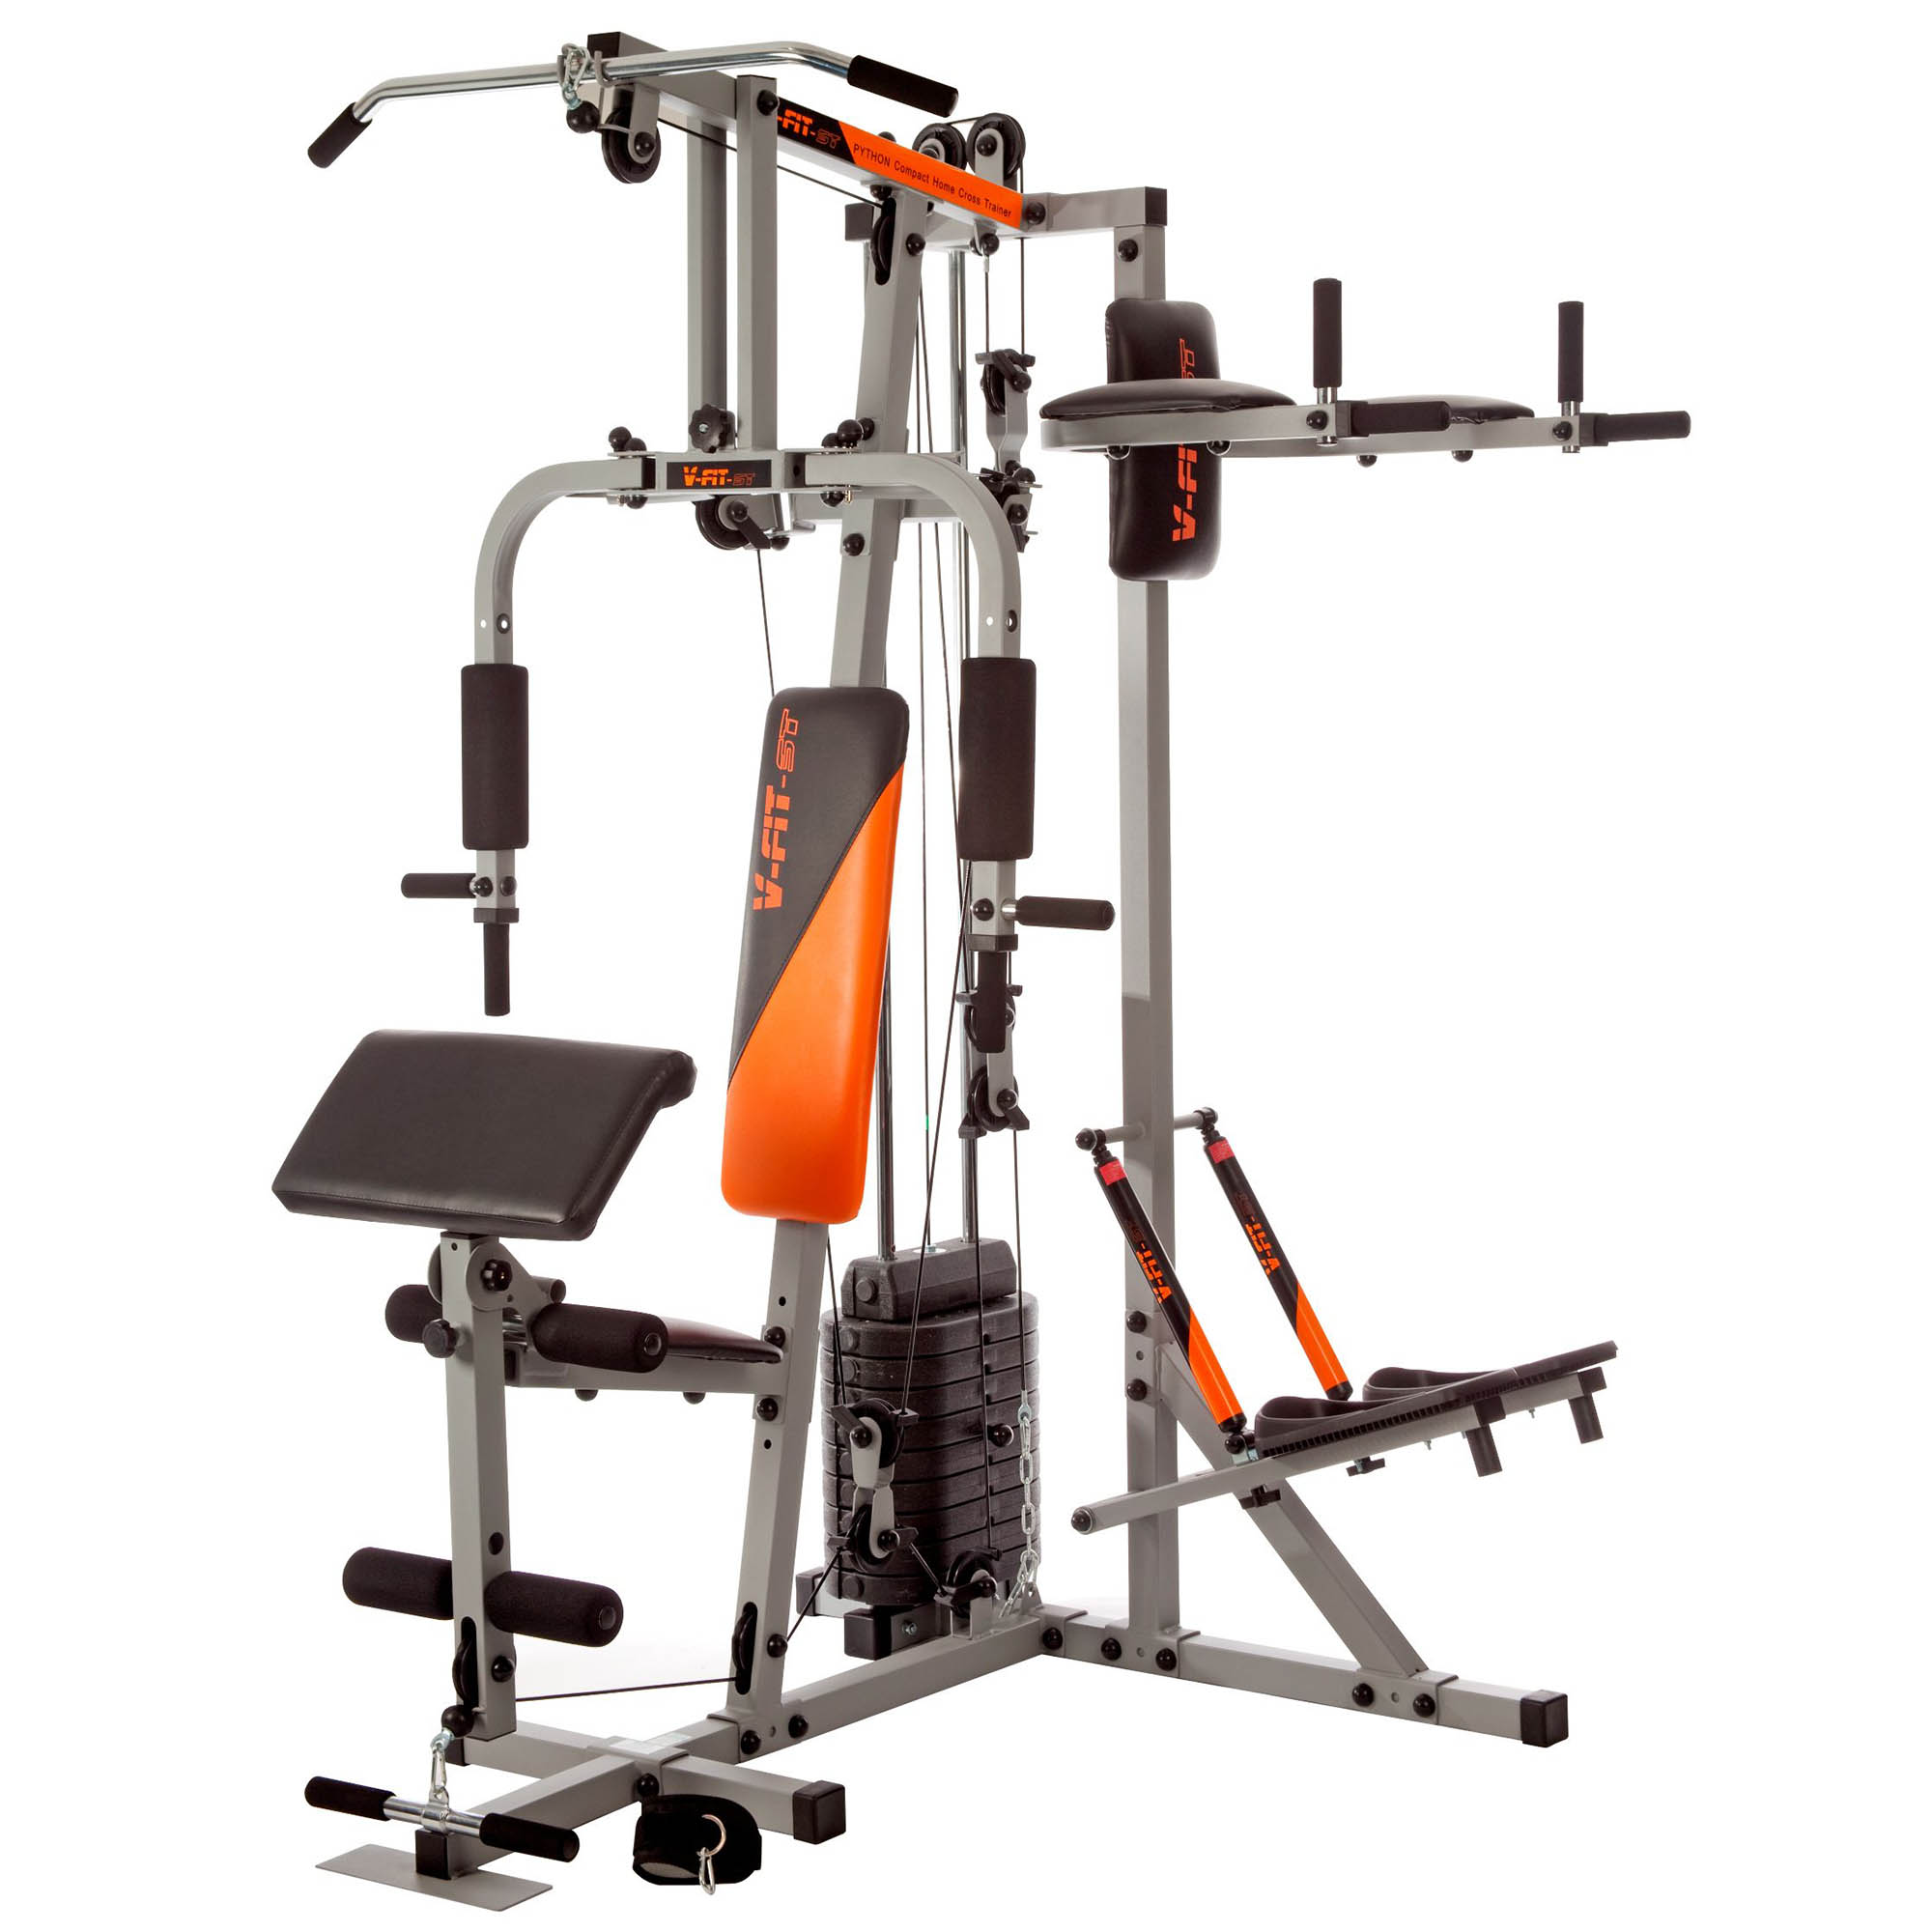 V-fit Herculean Python Multi Gym